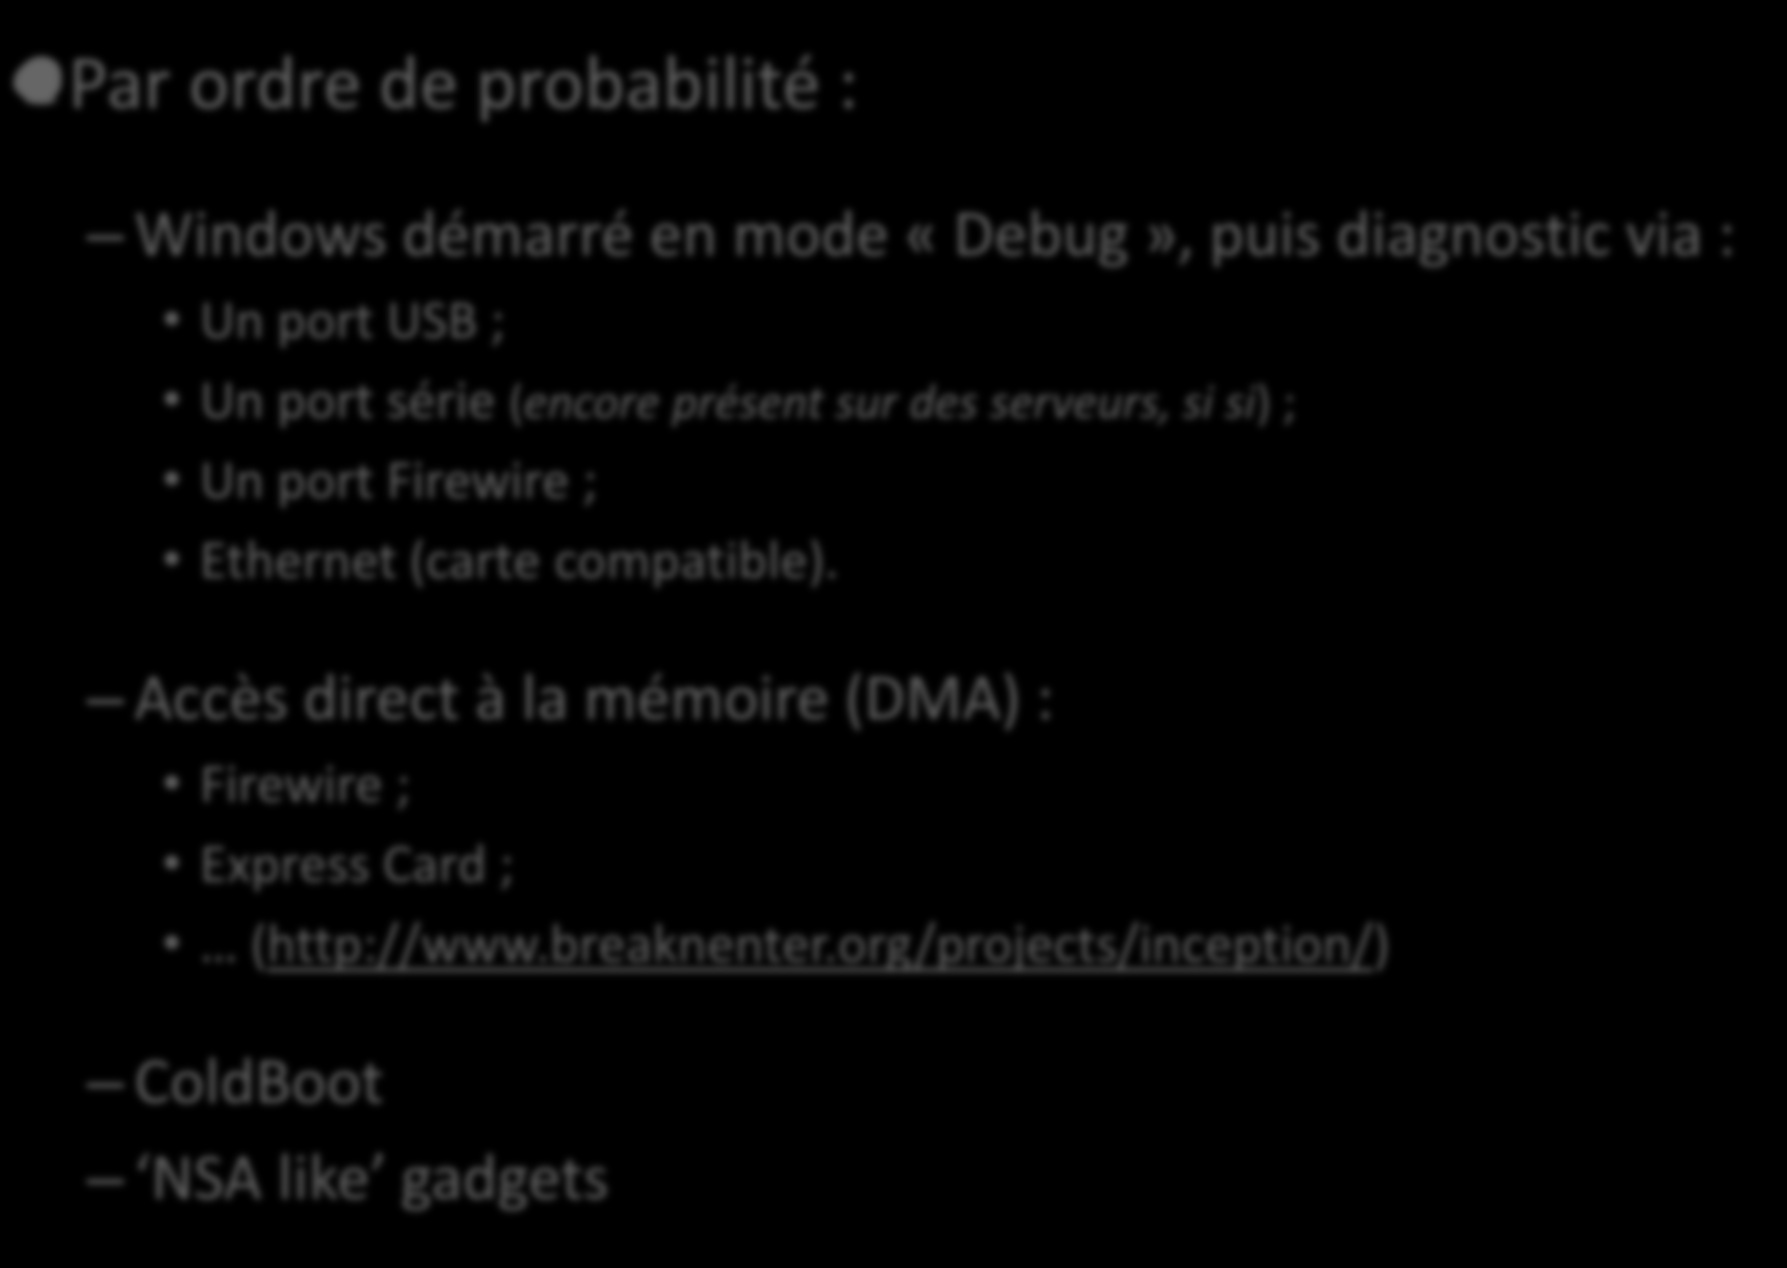 La mémoire de Windows Accès direct Par ordre de probabilité : Windows démarré en mode «Debug», puis diagnostic via :